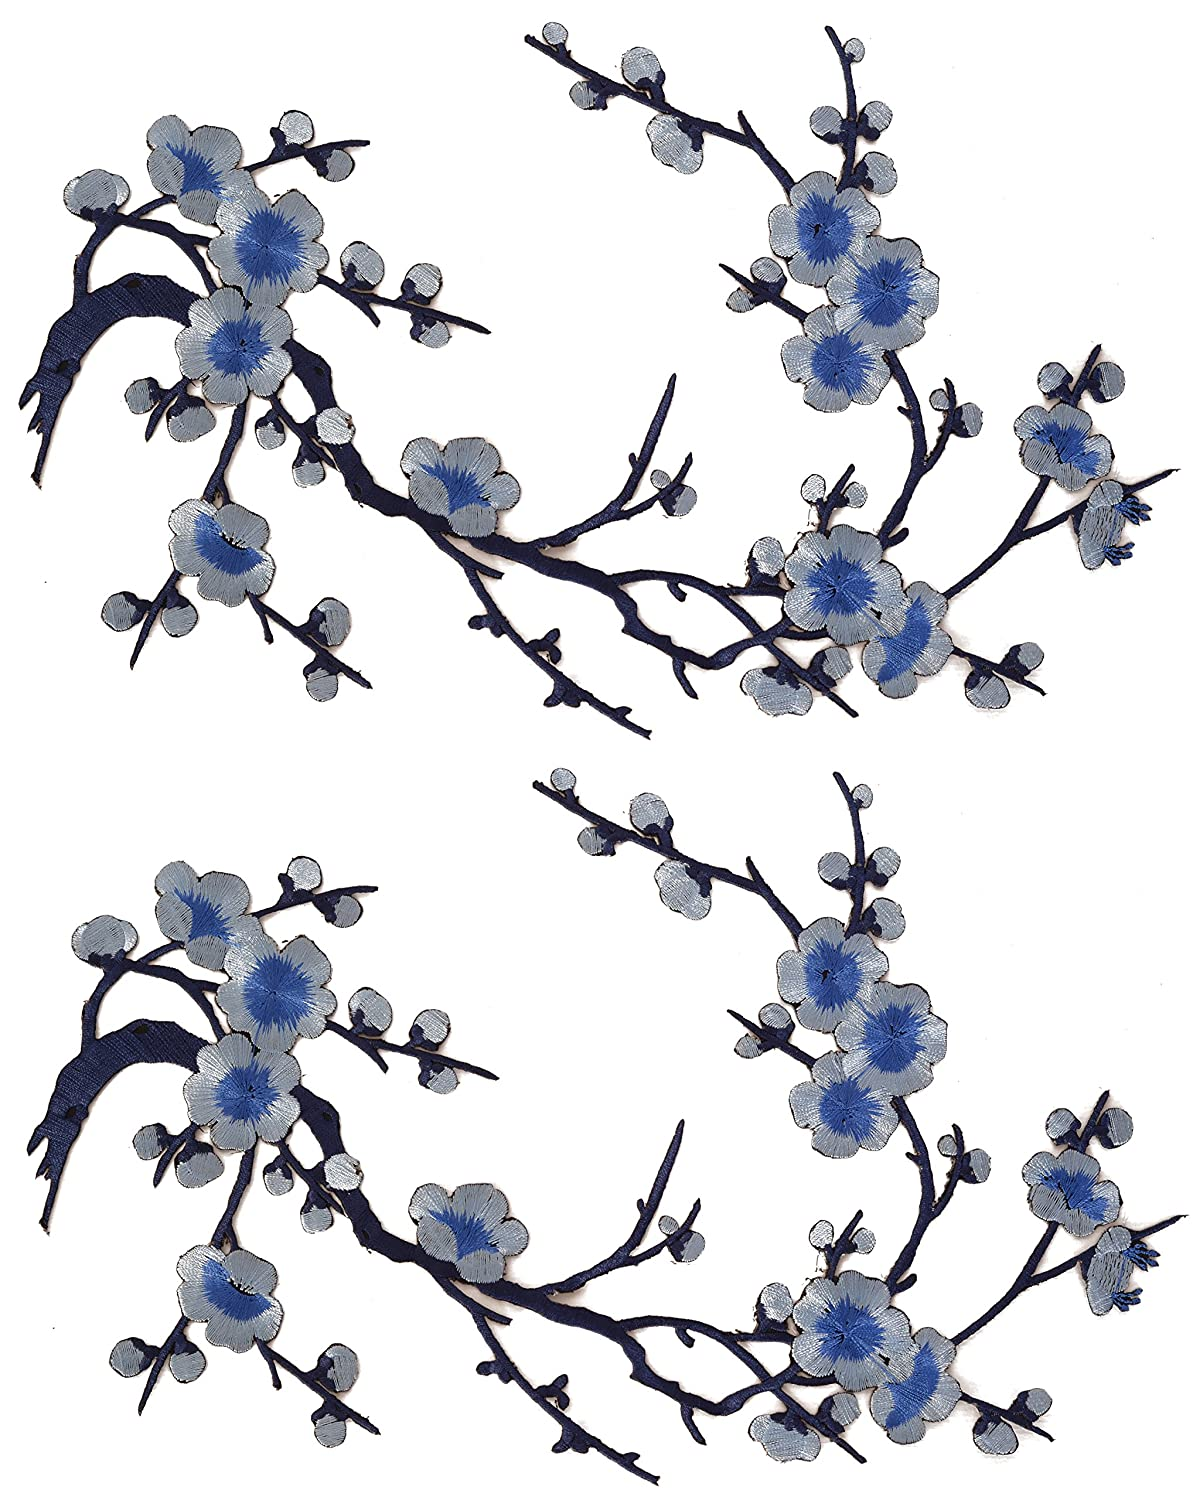 4c974aaa2 Amazon.com: Emmas Two Asian Cherry Blossom Sakura Flower Iron on  Embroidered Appliques Patch Japanese Chinese (Blue)